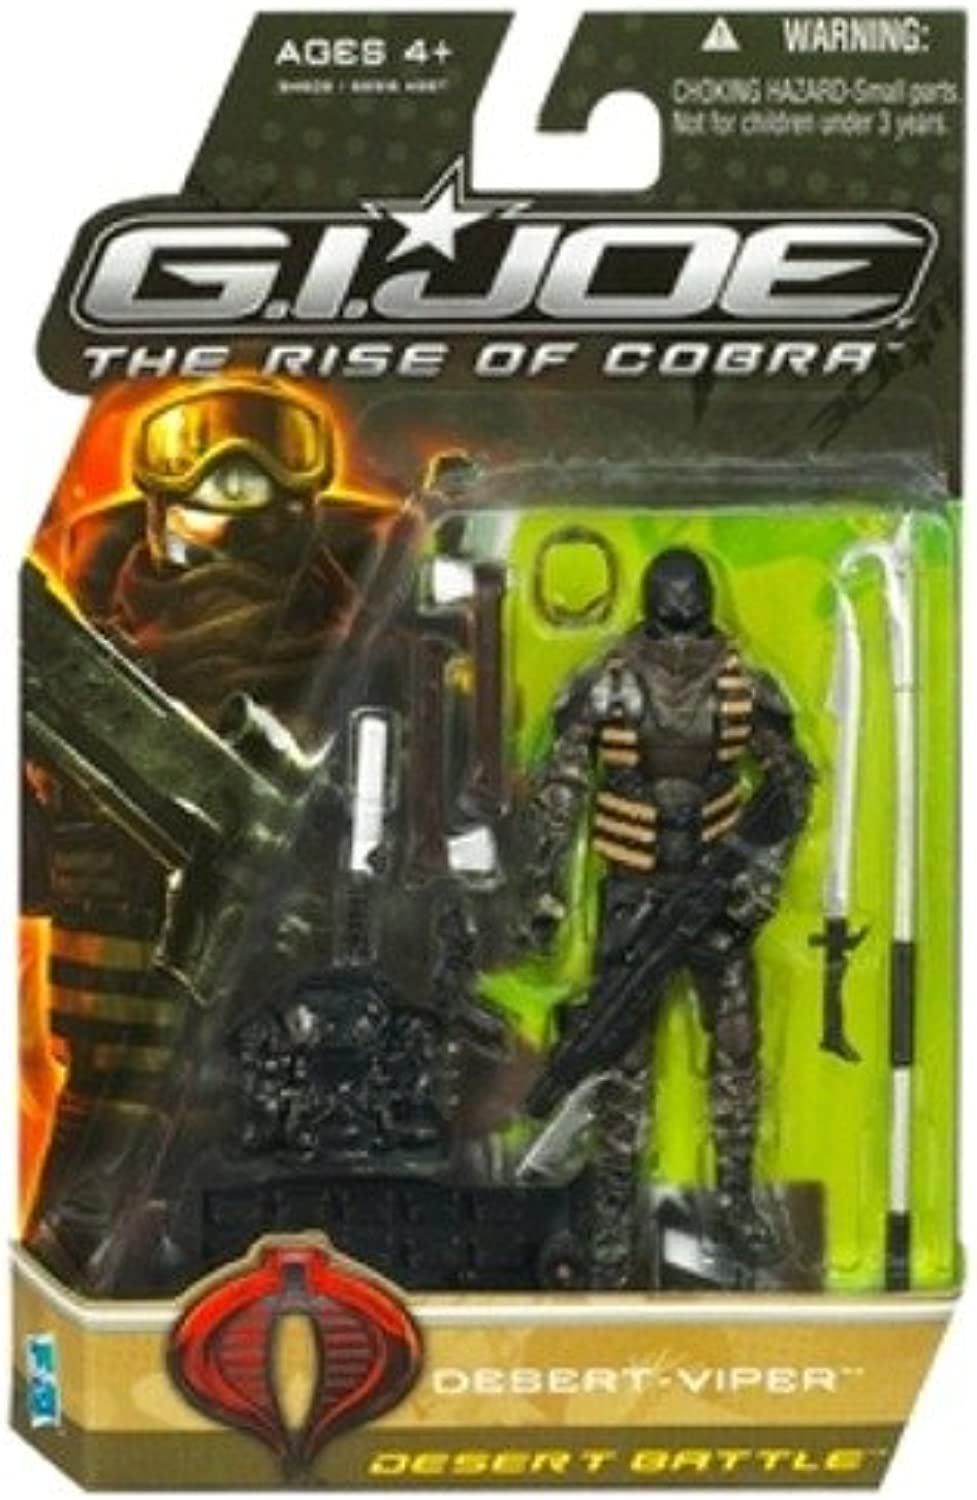 G.I. Joe The Rise of Cobra DesertViper Desert Battle Action Figure